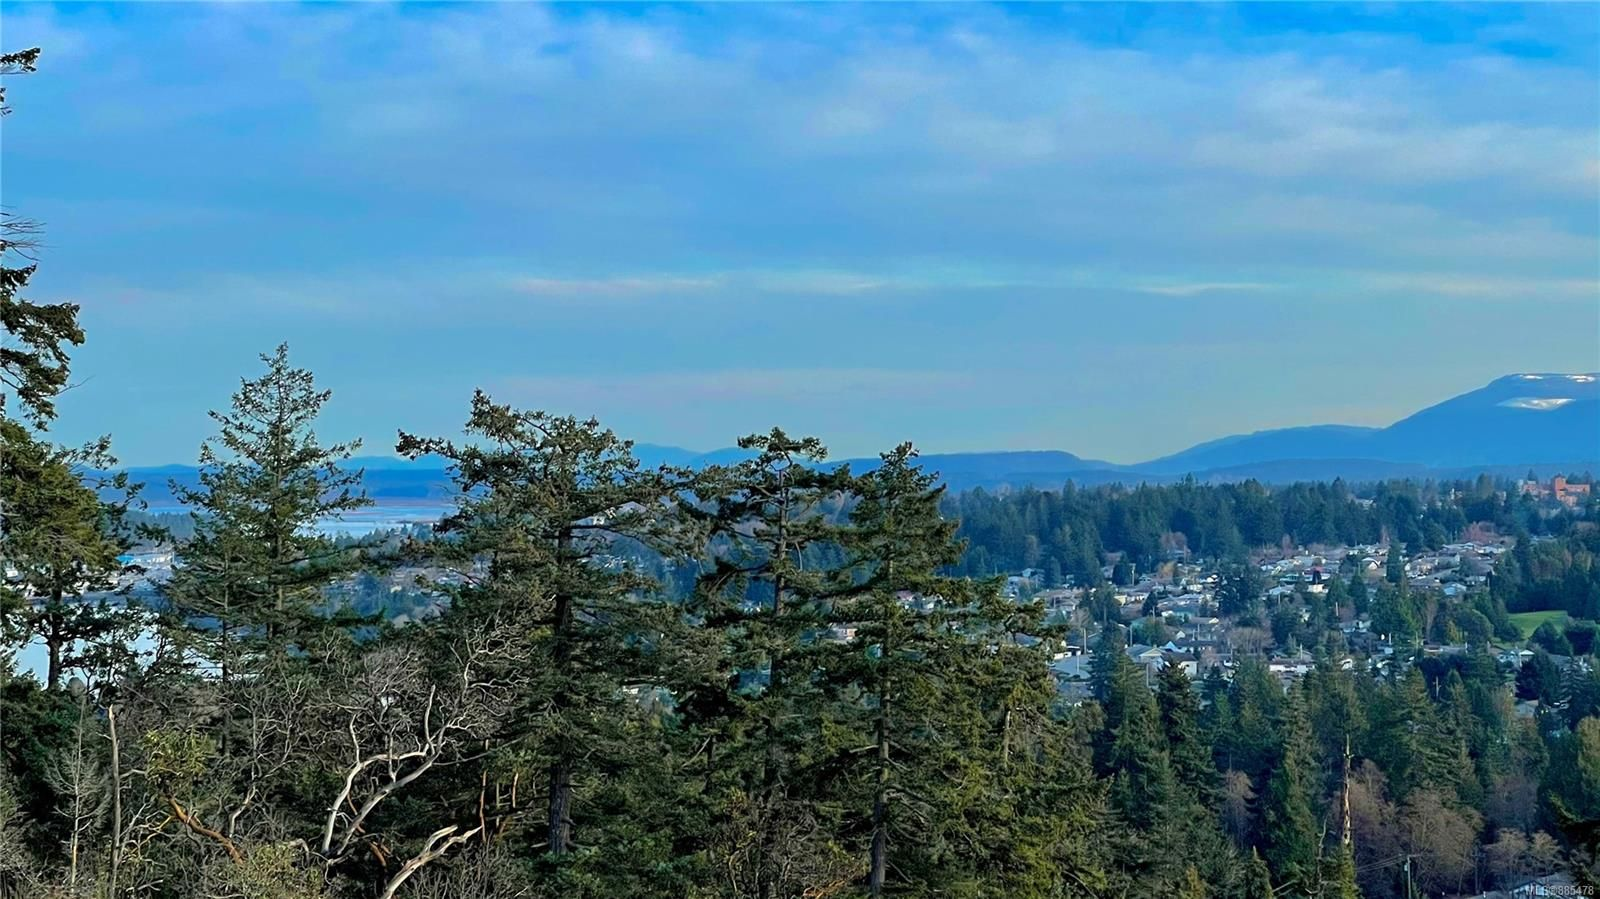 Photo 8: Photos: 103 Amphion Terr in : Na Departure Bay Land for sale (Nanaimo)  : MLS®# 885478